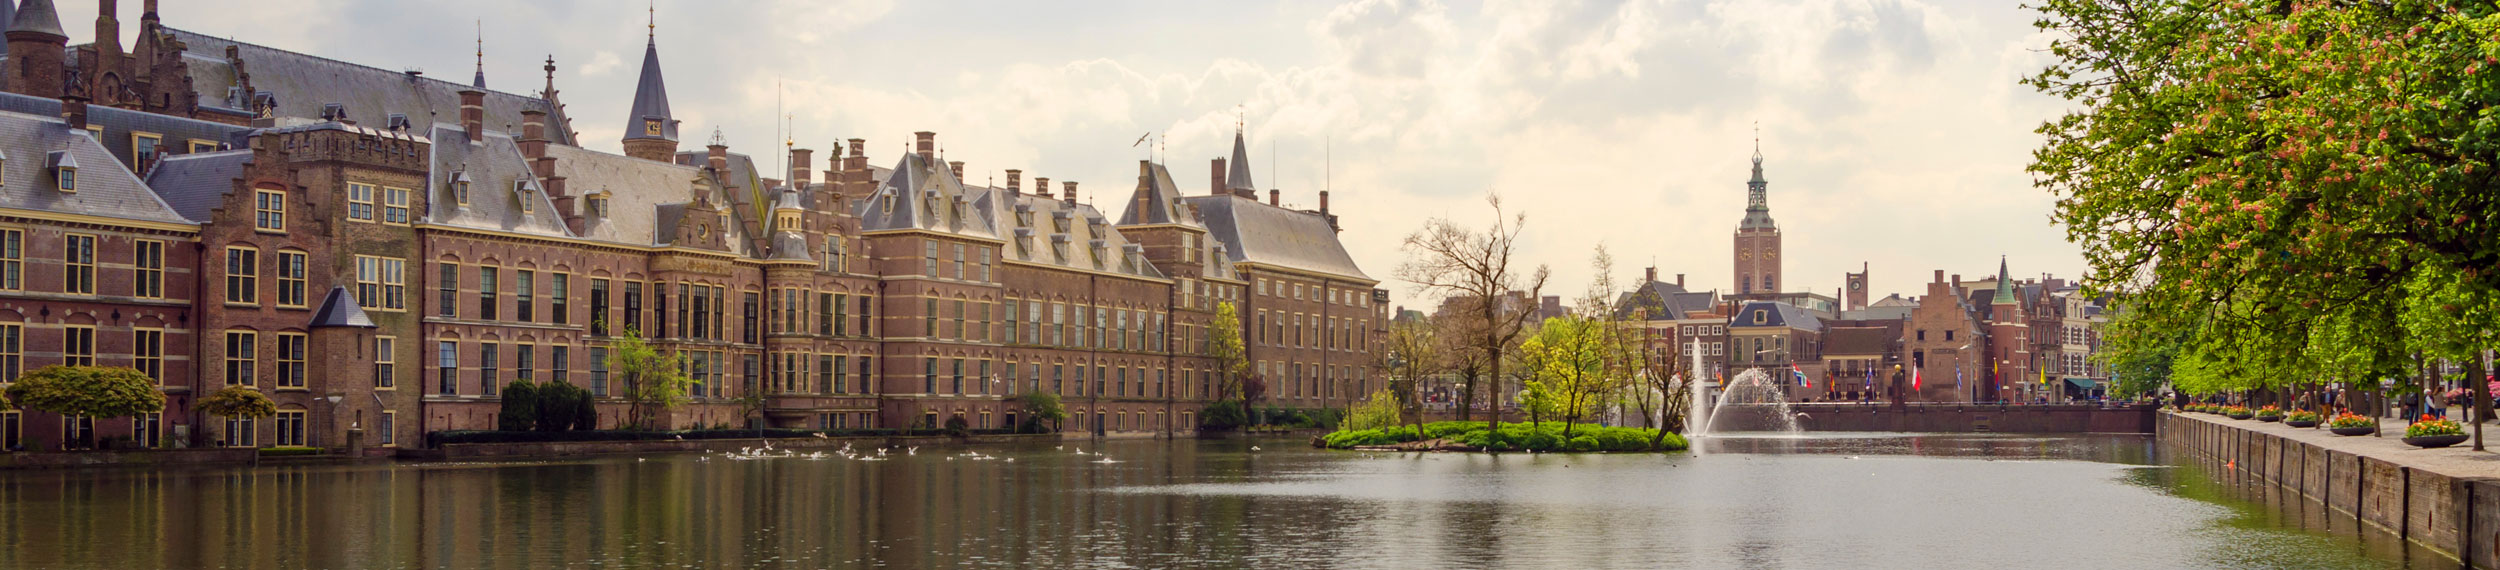 Binnenhof (Dutch parliament), Hague, Netherlands